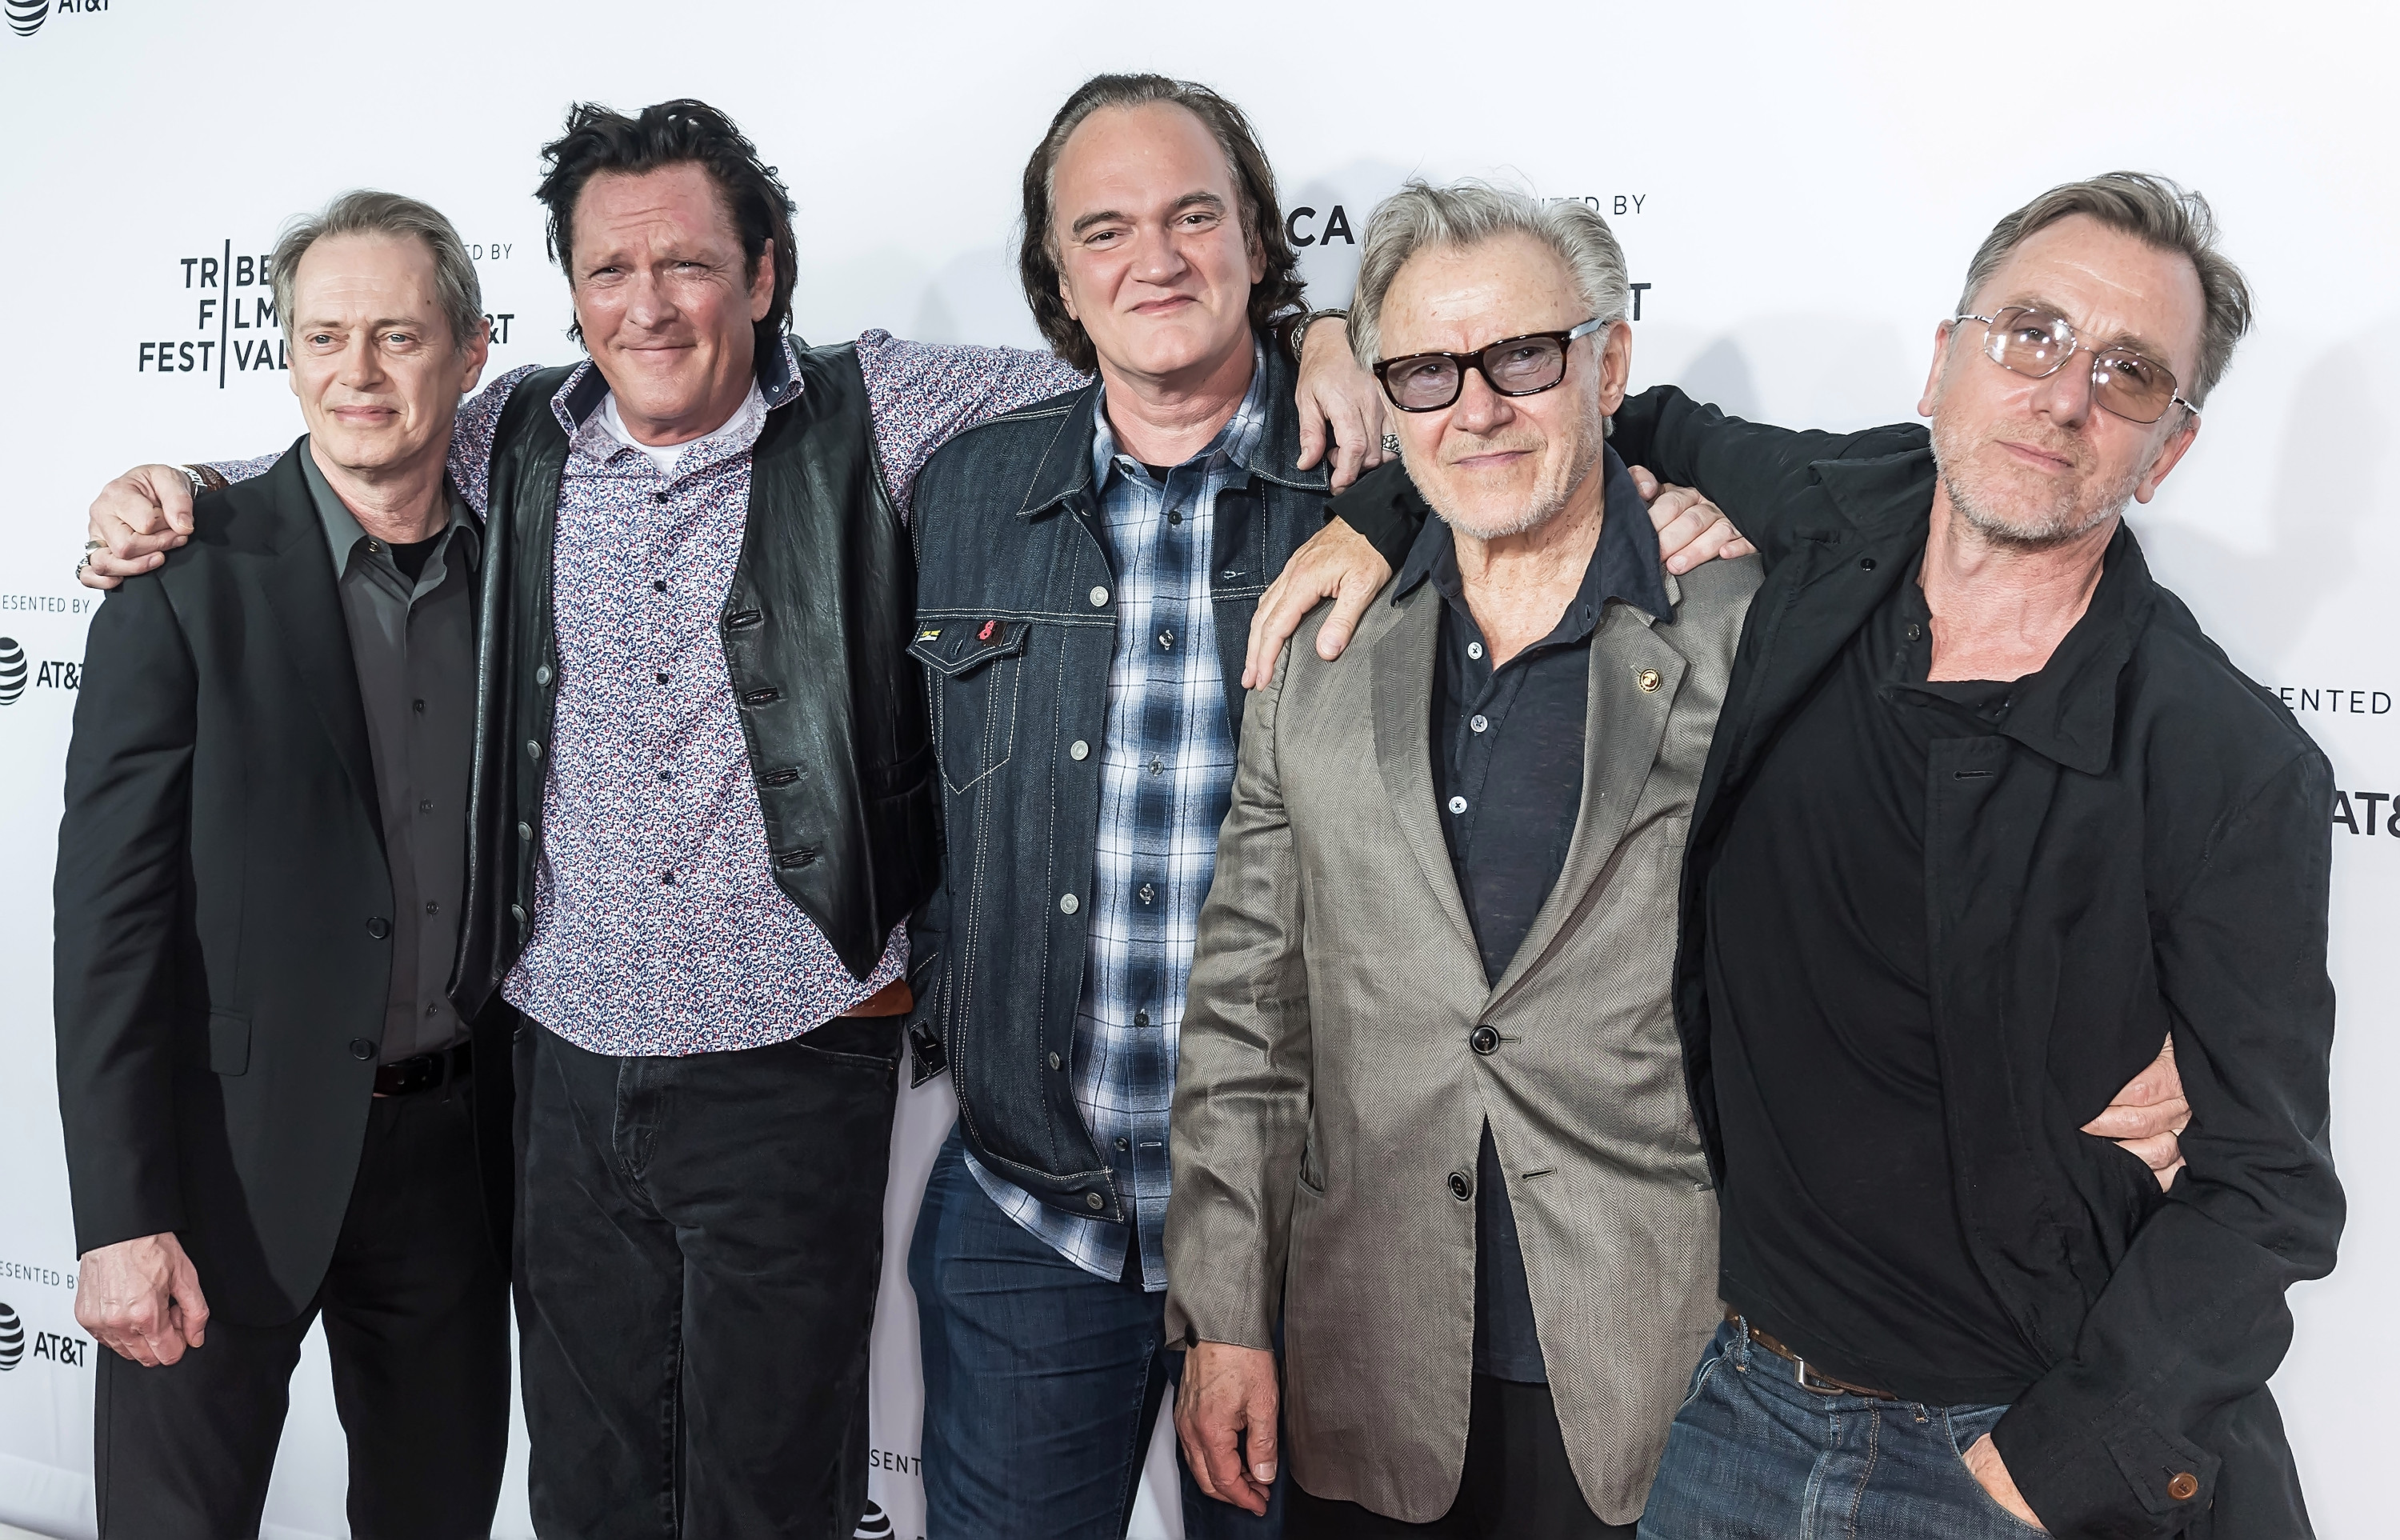 Reservoir Dogs 25th Anniversary Image